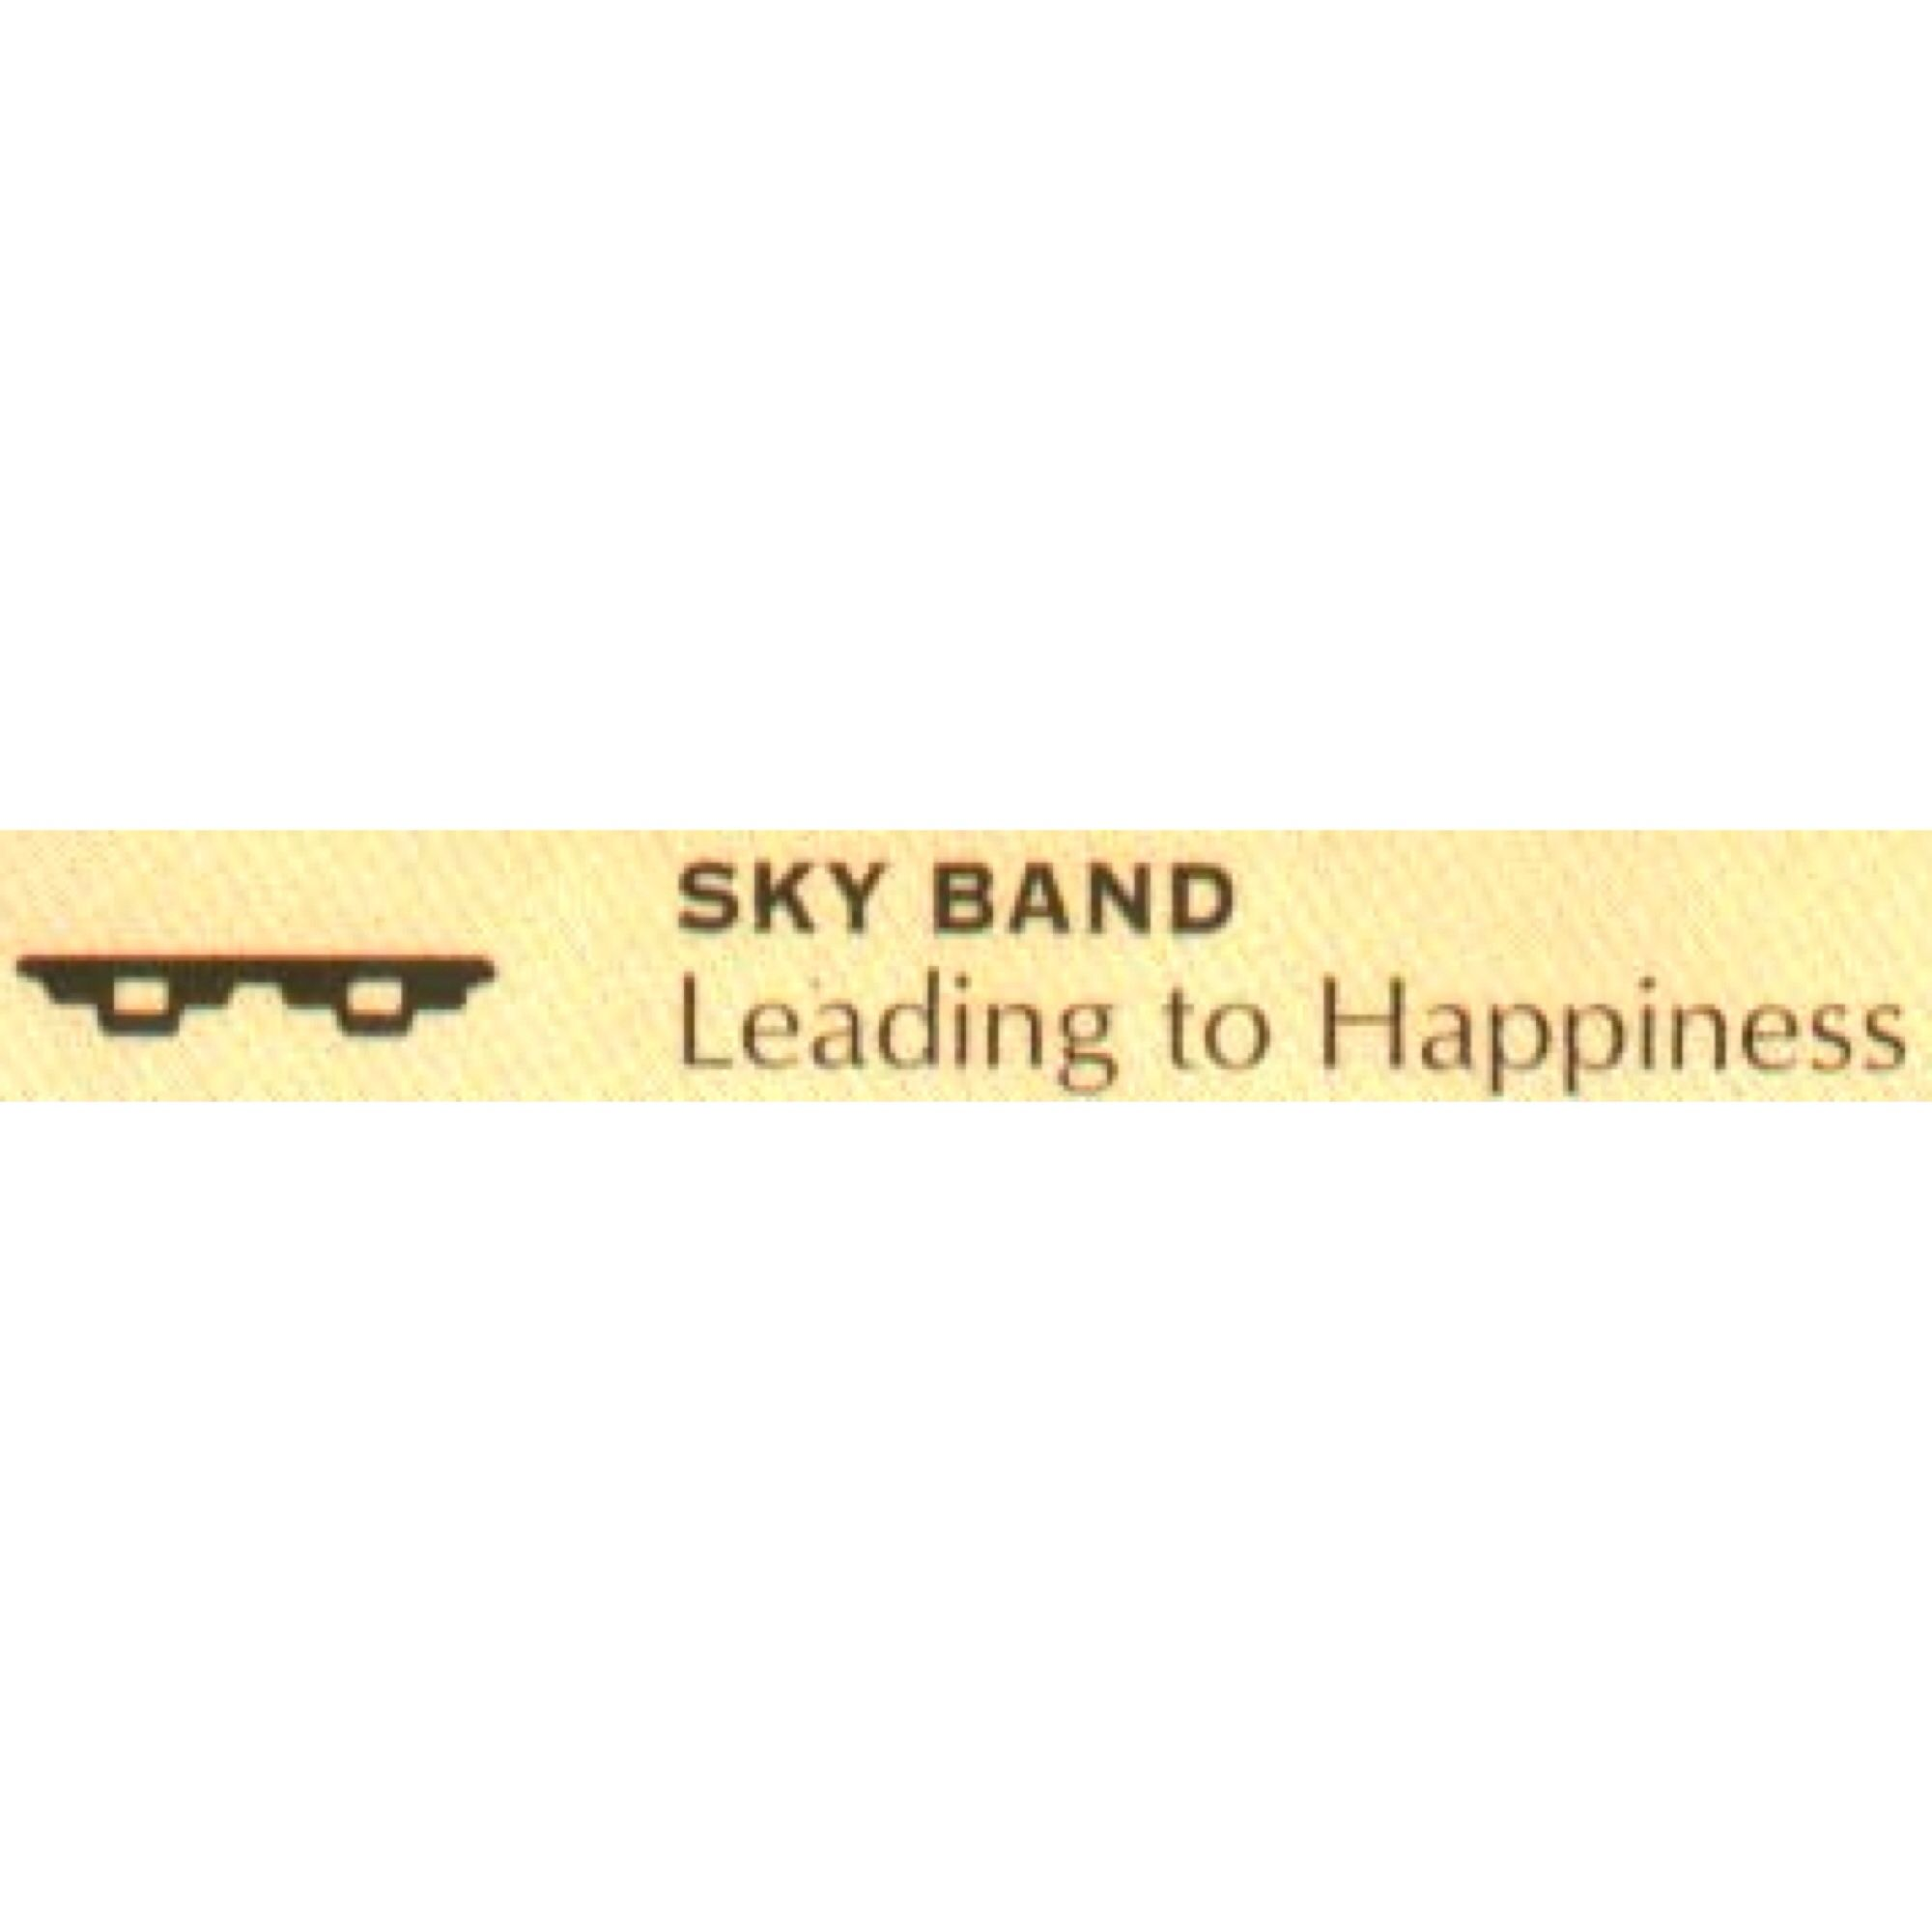 Native American Symbol Sky Band Leading To Happiness Random